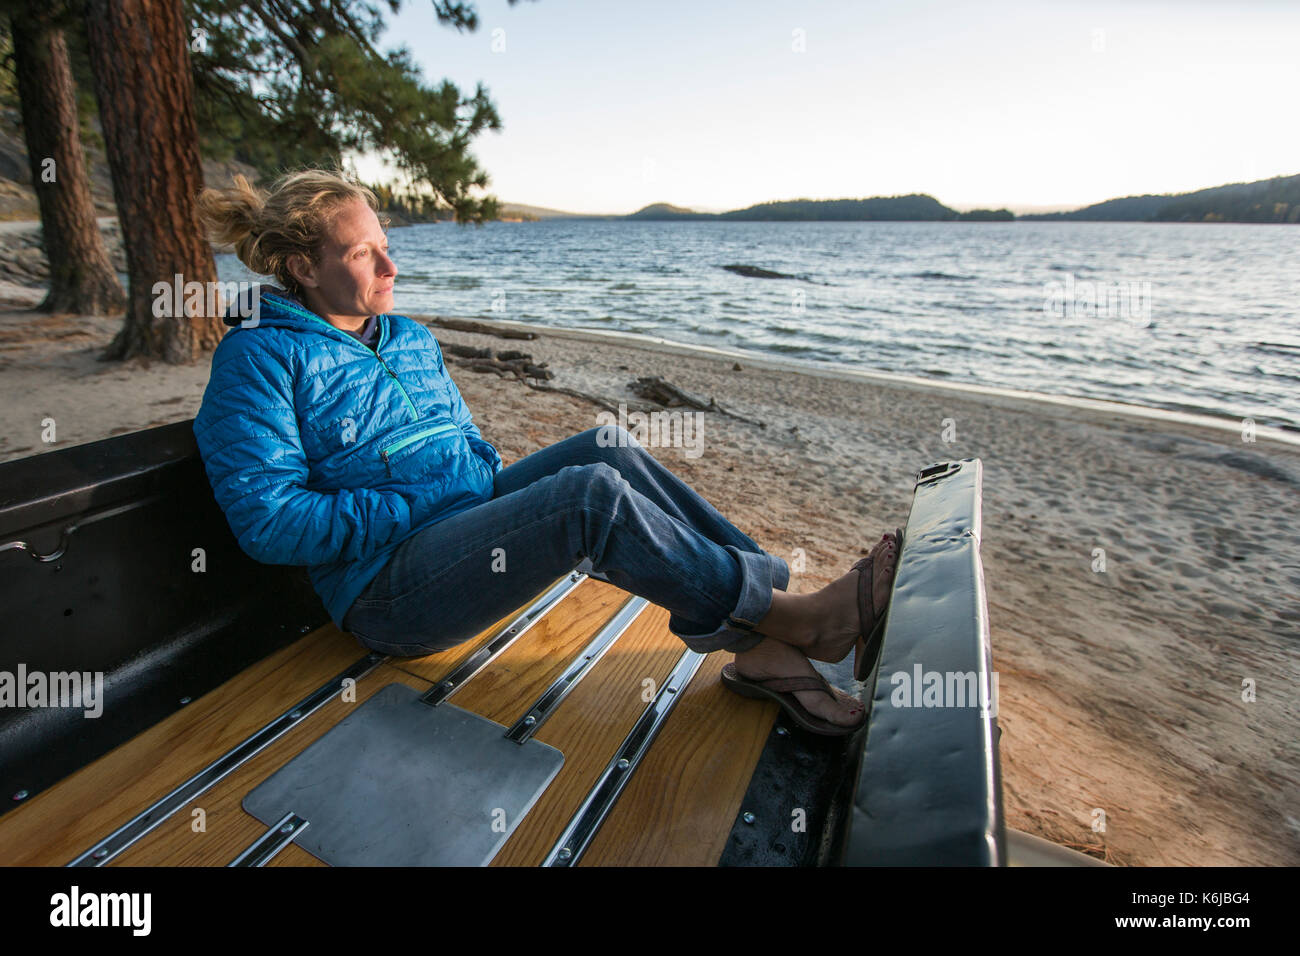 Woman sitting in renovated truck watching sunset, Payette Lake, McCall, Idaho, USA - Stock Image